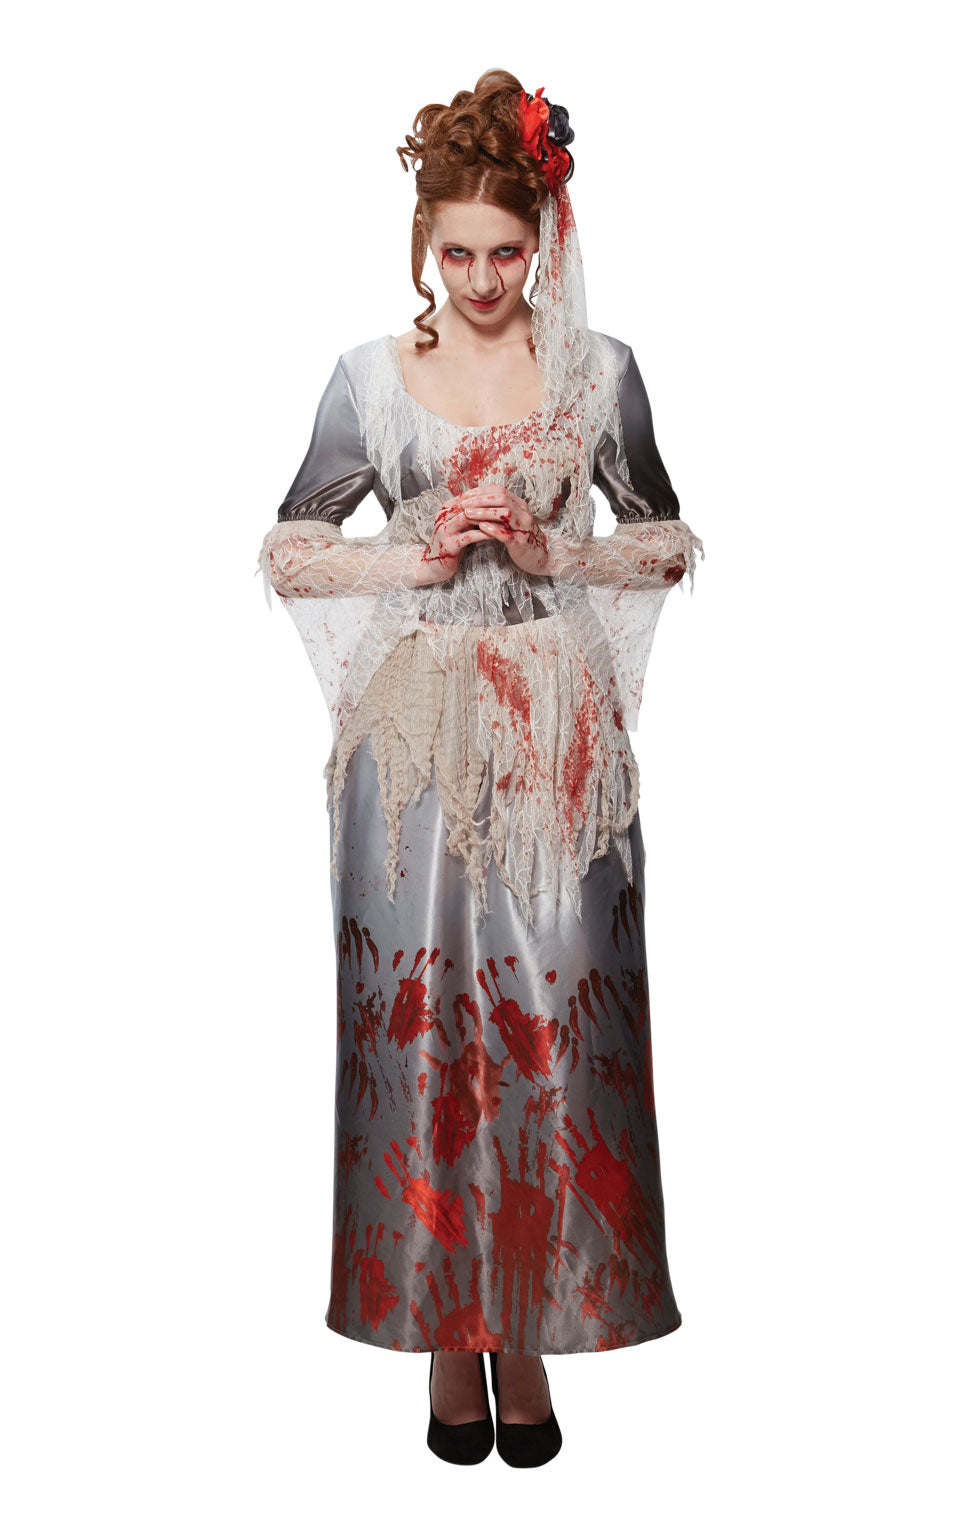 BLOODY HANDS DRESS